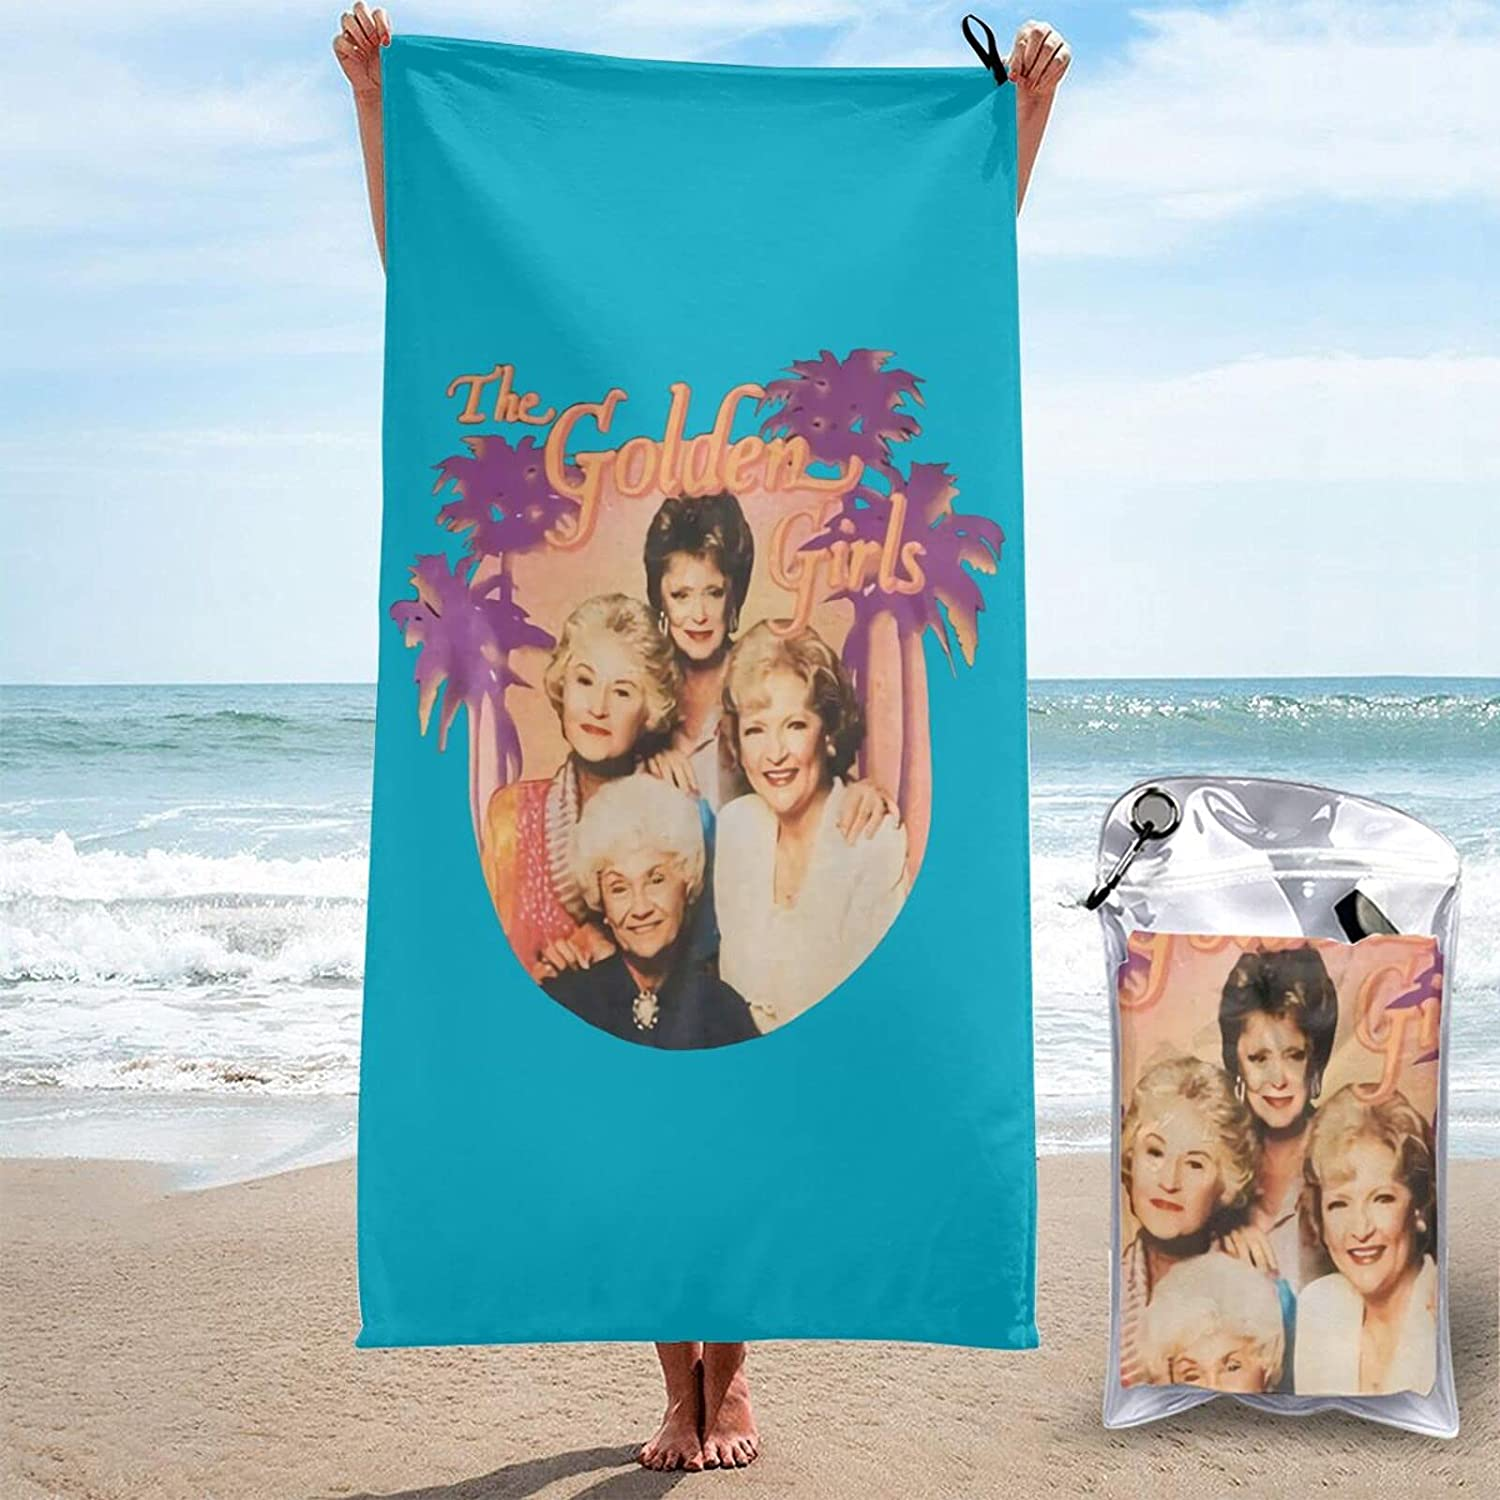 The Golden Girls Store 3D Printed Large Qu Towels Sand-Free are Beach Mail order